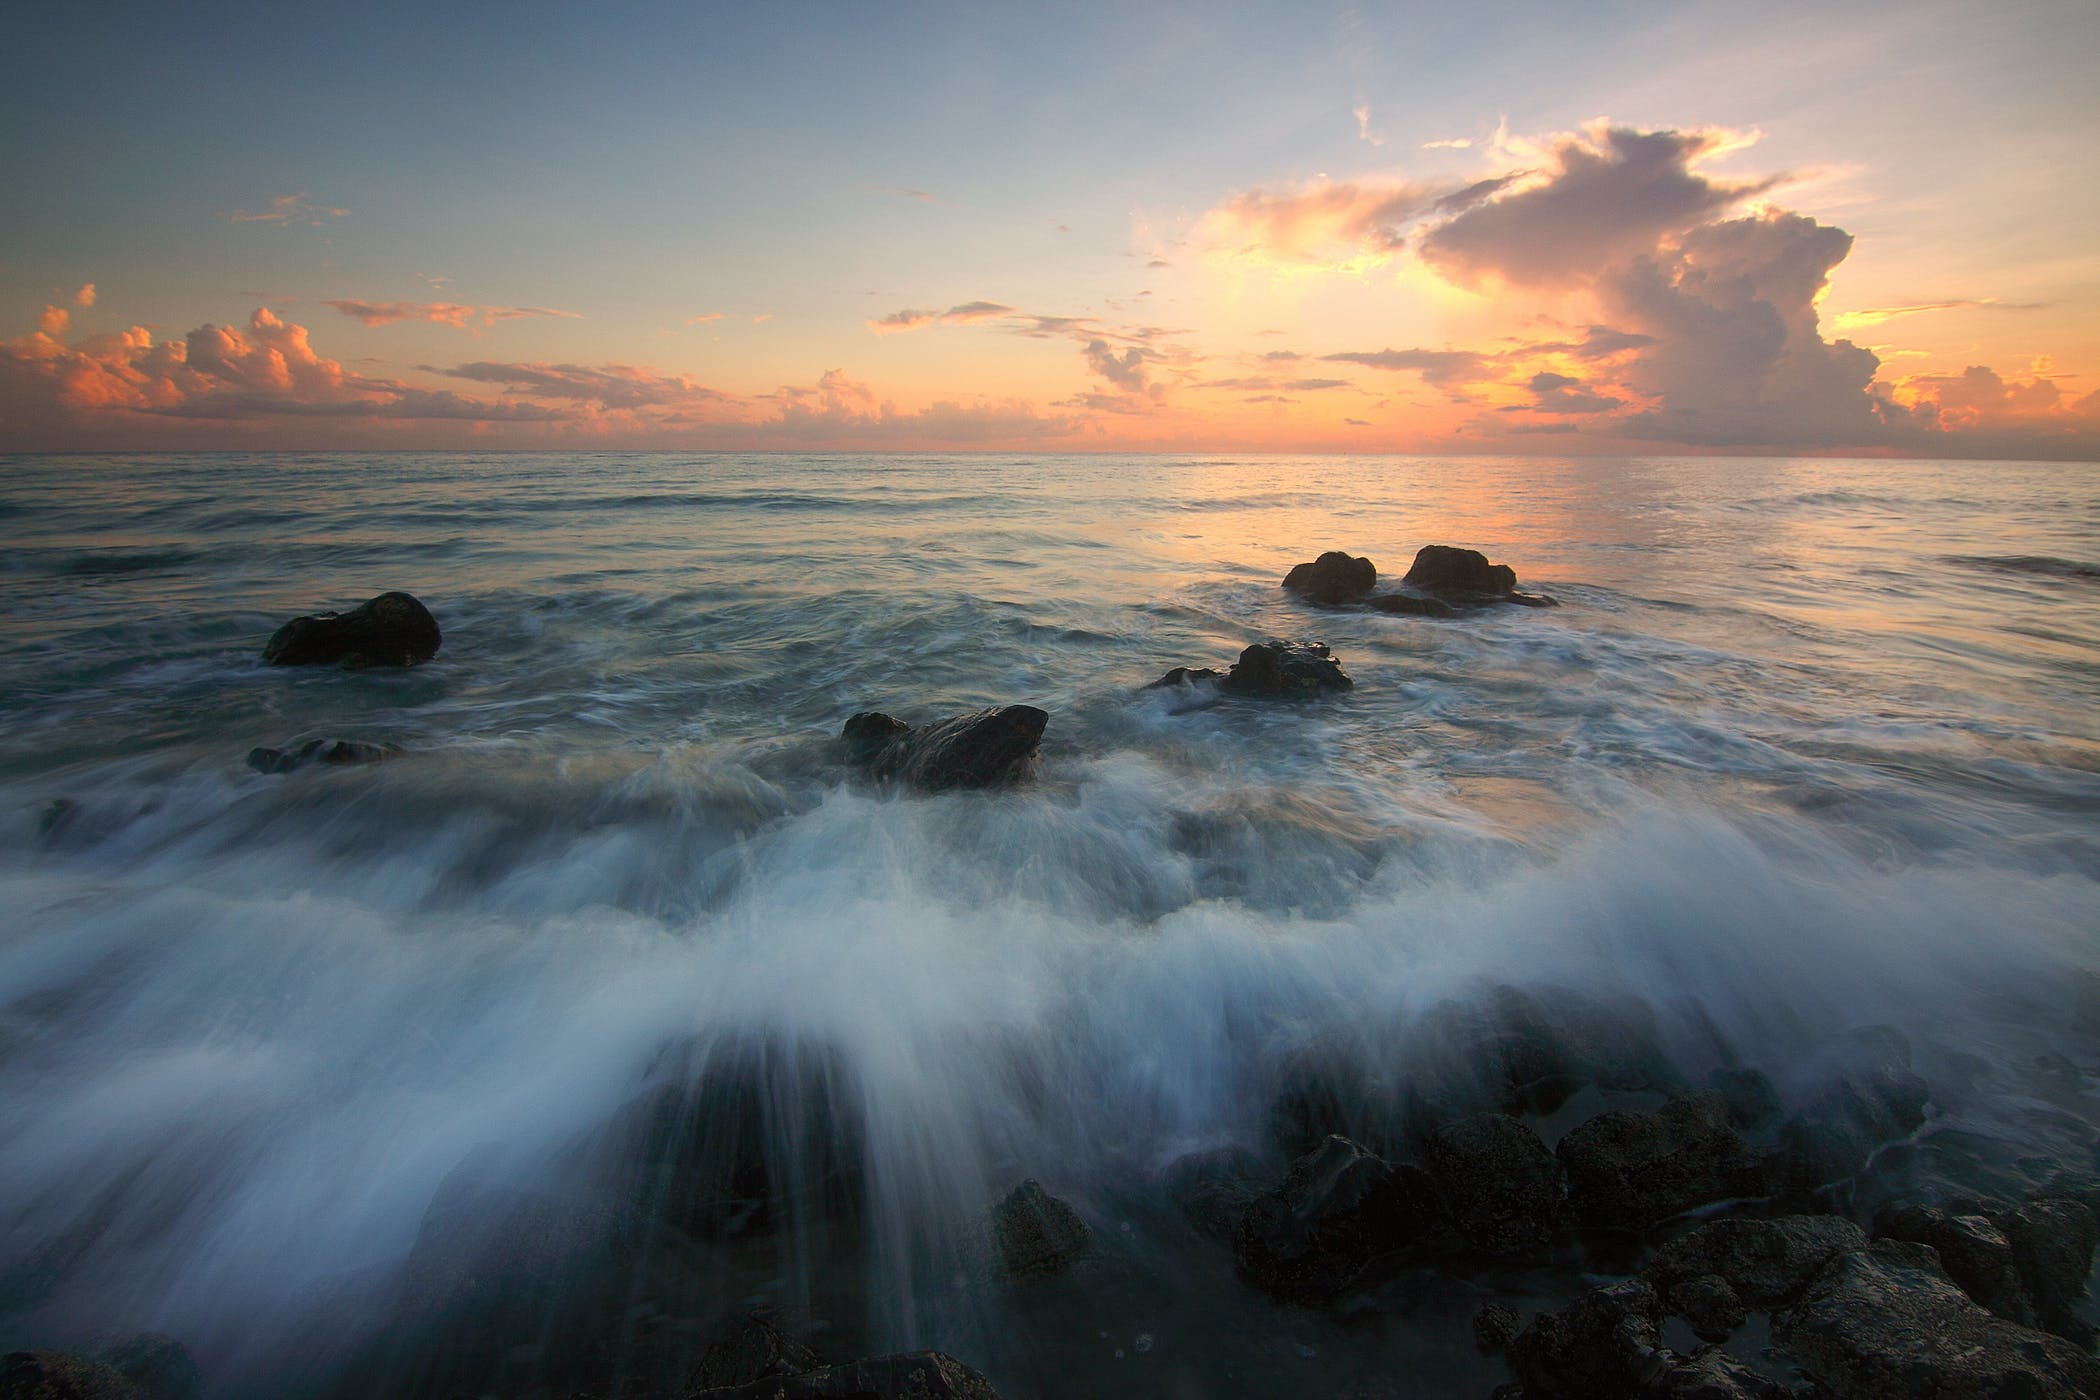 Time-lapsed Photography of Seashore during Golden Hour